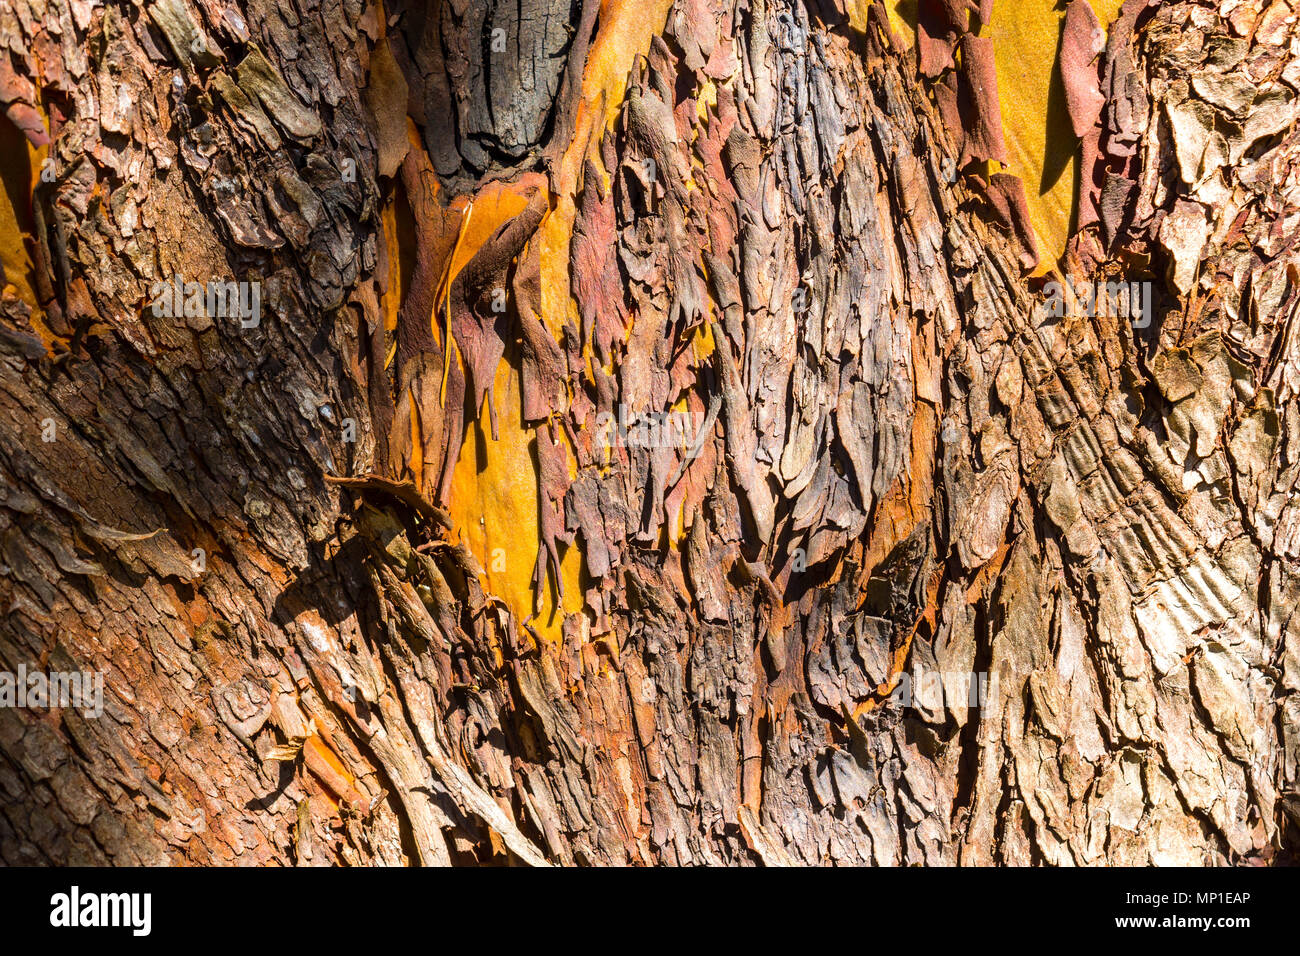 Arbutus unedo trees, Helliwell Provincial Park, Hornby Island, BC, Canada. - Stock Image